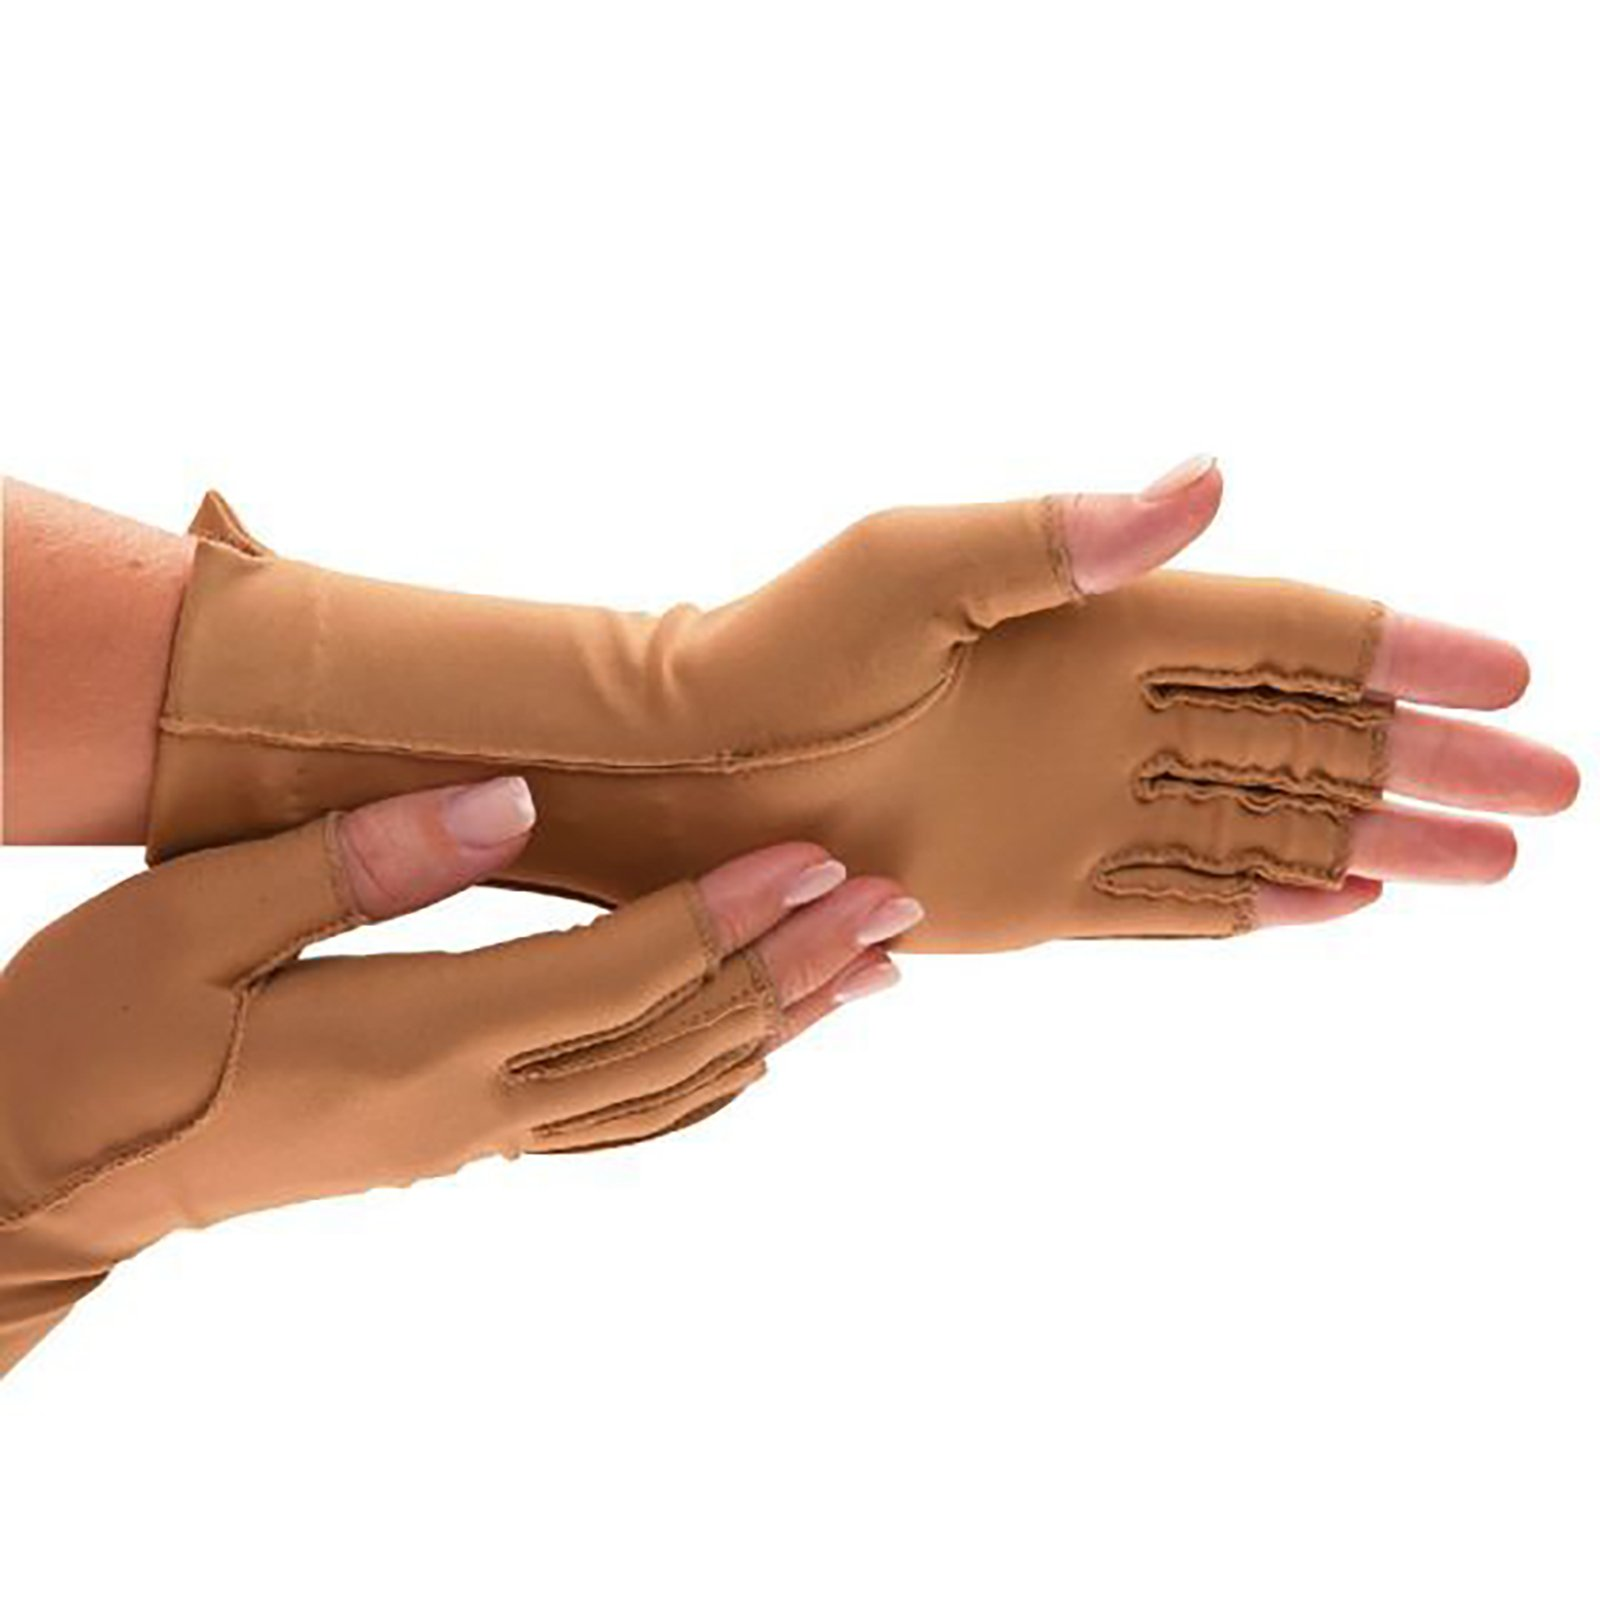 Isotoner Therapeutic Gloves, Pair, X-Small, Open Finger by Isotoner